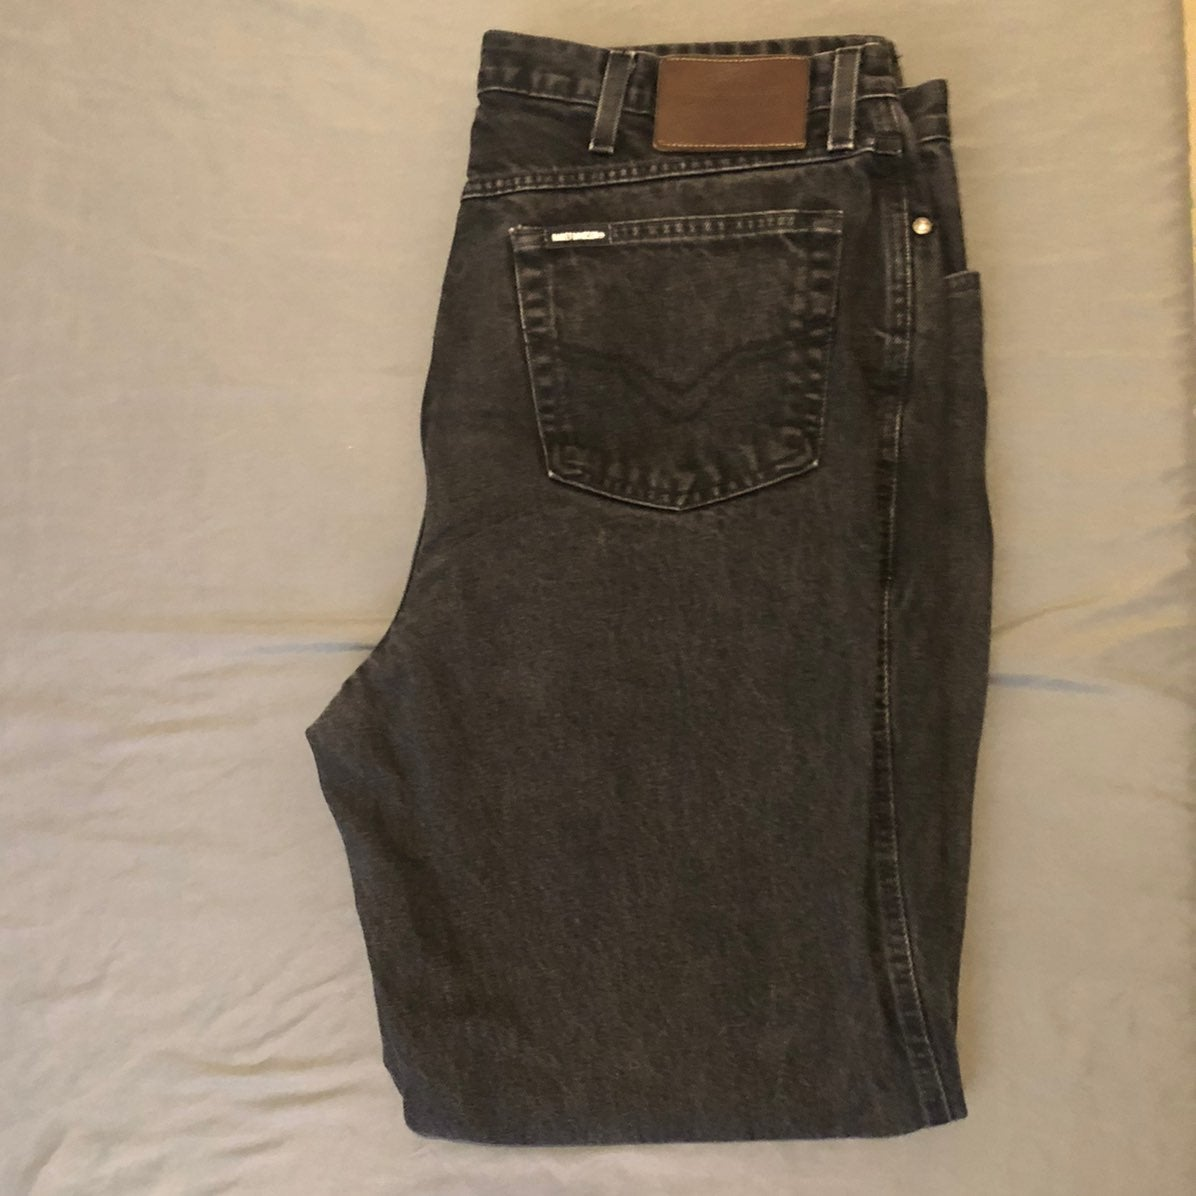 Harley Davidson Biker Blues Denim Jeans